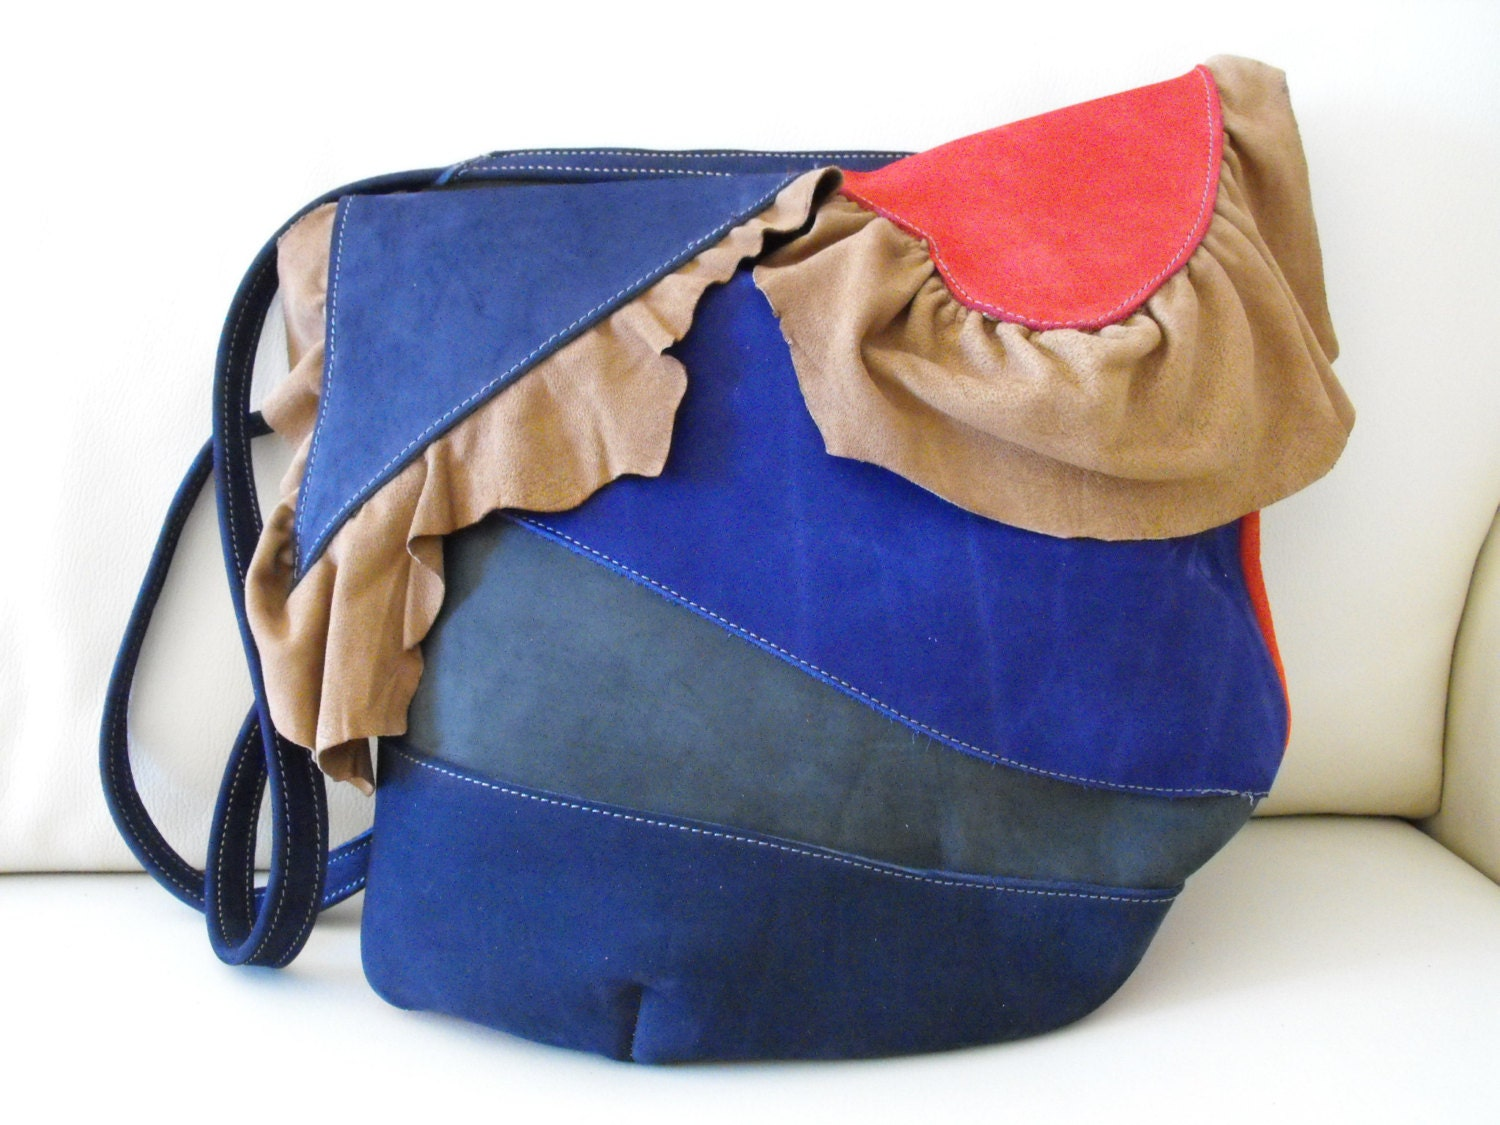 Red Blue and Gray Bag Crossebody Hobo Embreagem - DiuBags